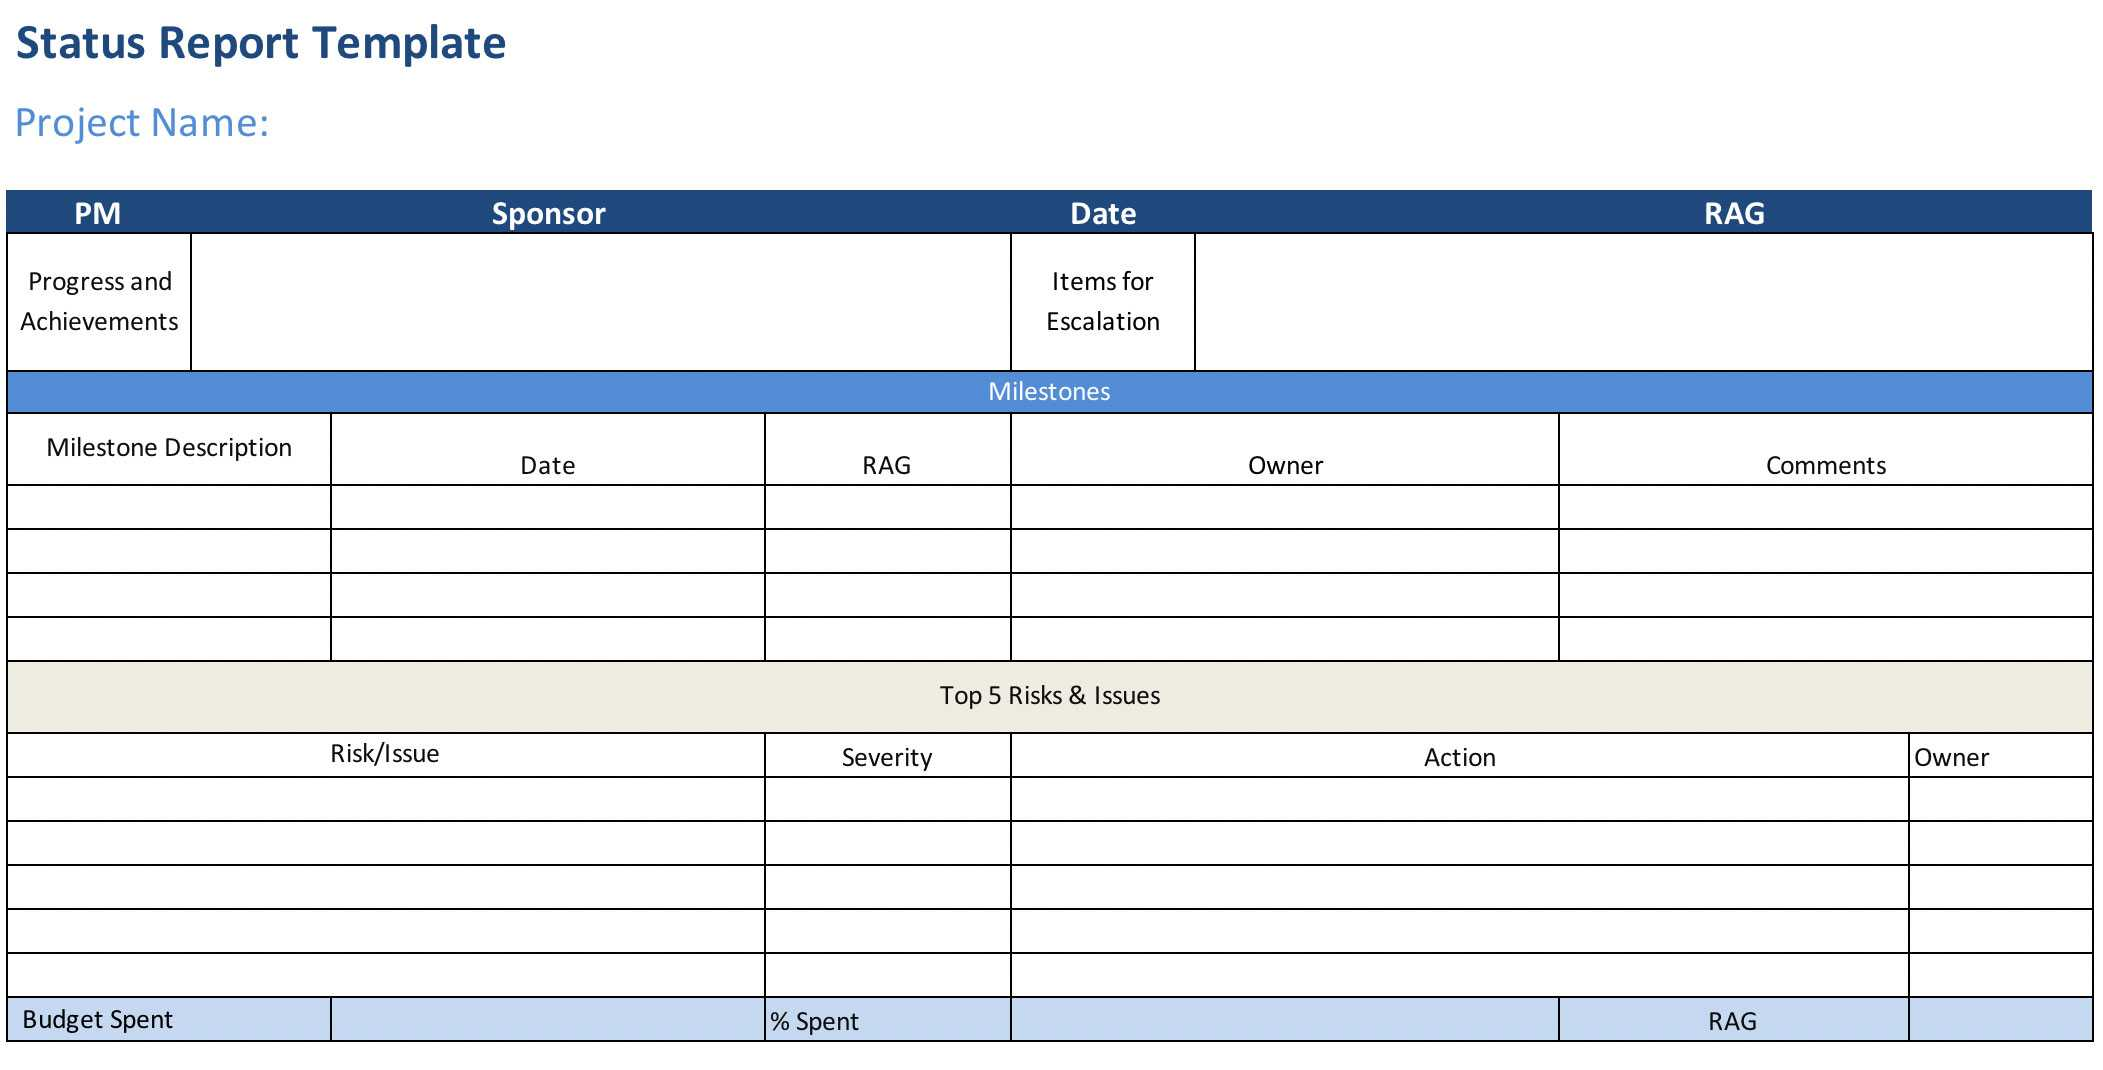 Project Status Report (Free Excel Template) - Projectmanager Inside Project Manager Status Report Template